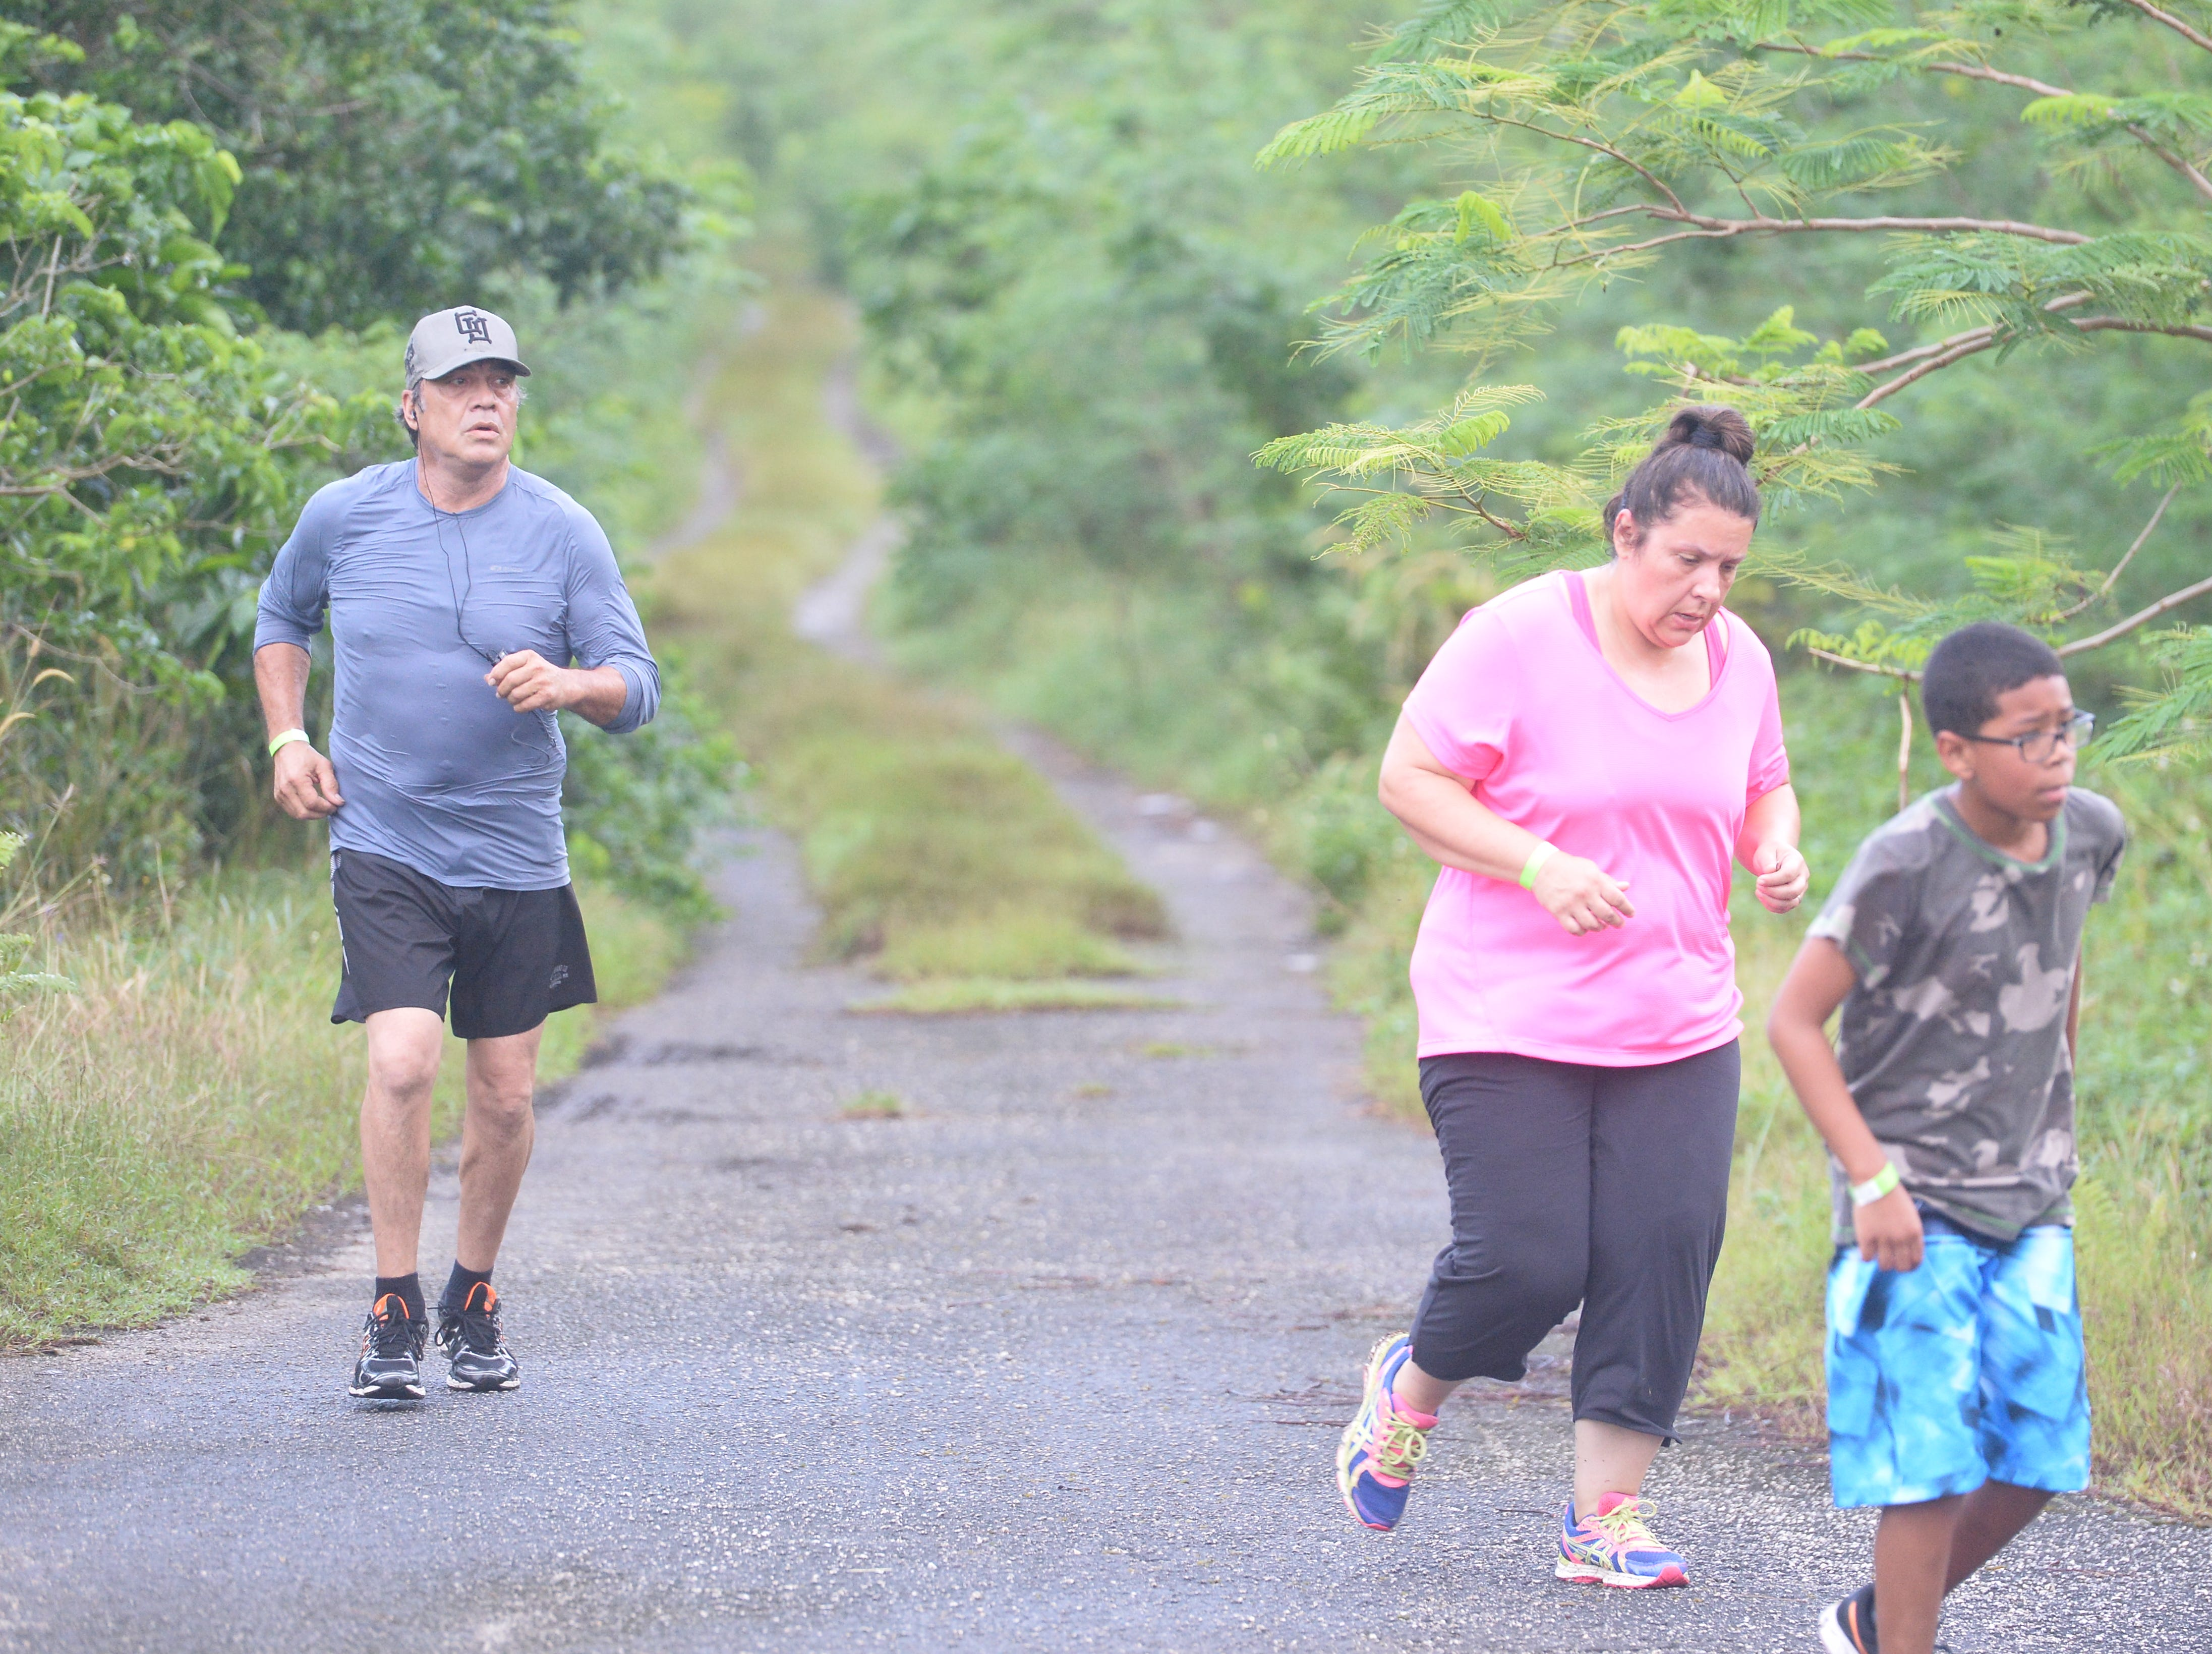 Scenes from the Guam Running Club's 48th Annual Turkey Trot. It is the GRC's only staggered-start race, which allows slower runners a chance at a top-10 finish.